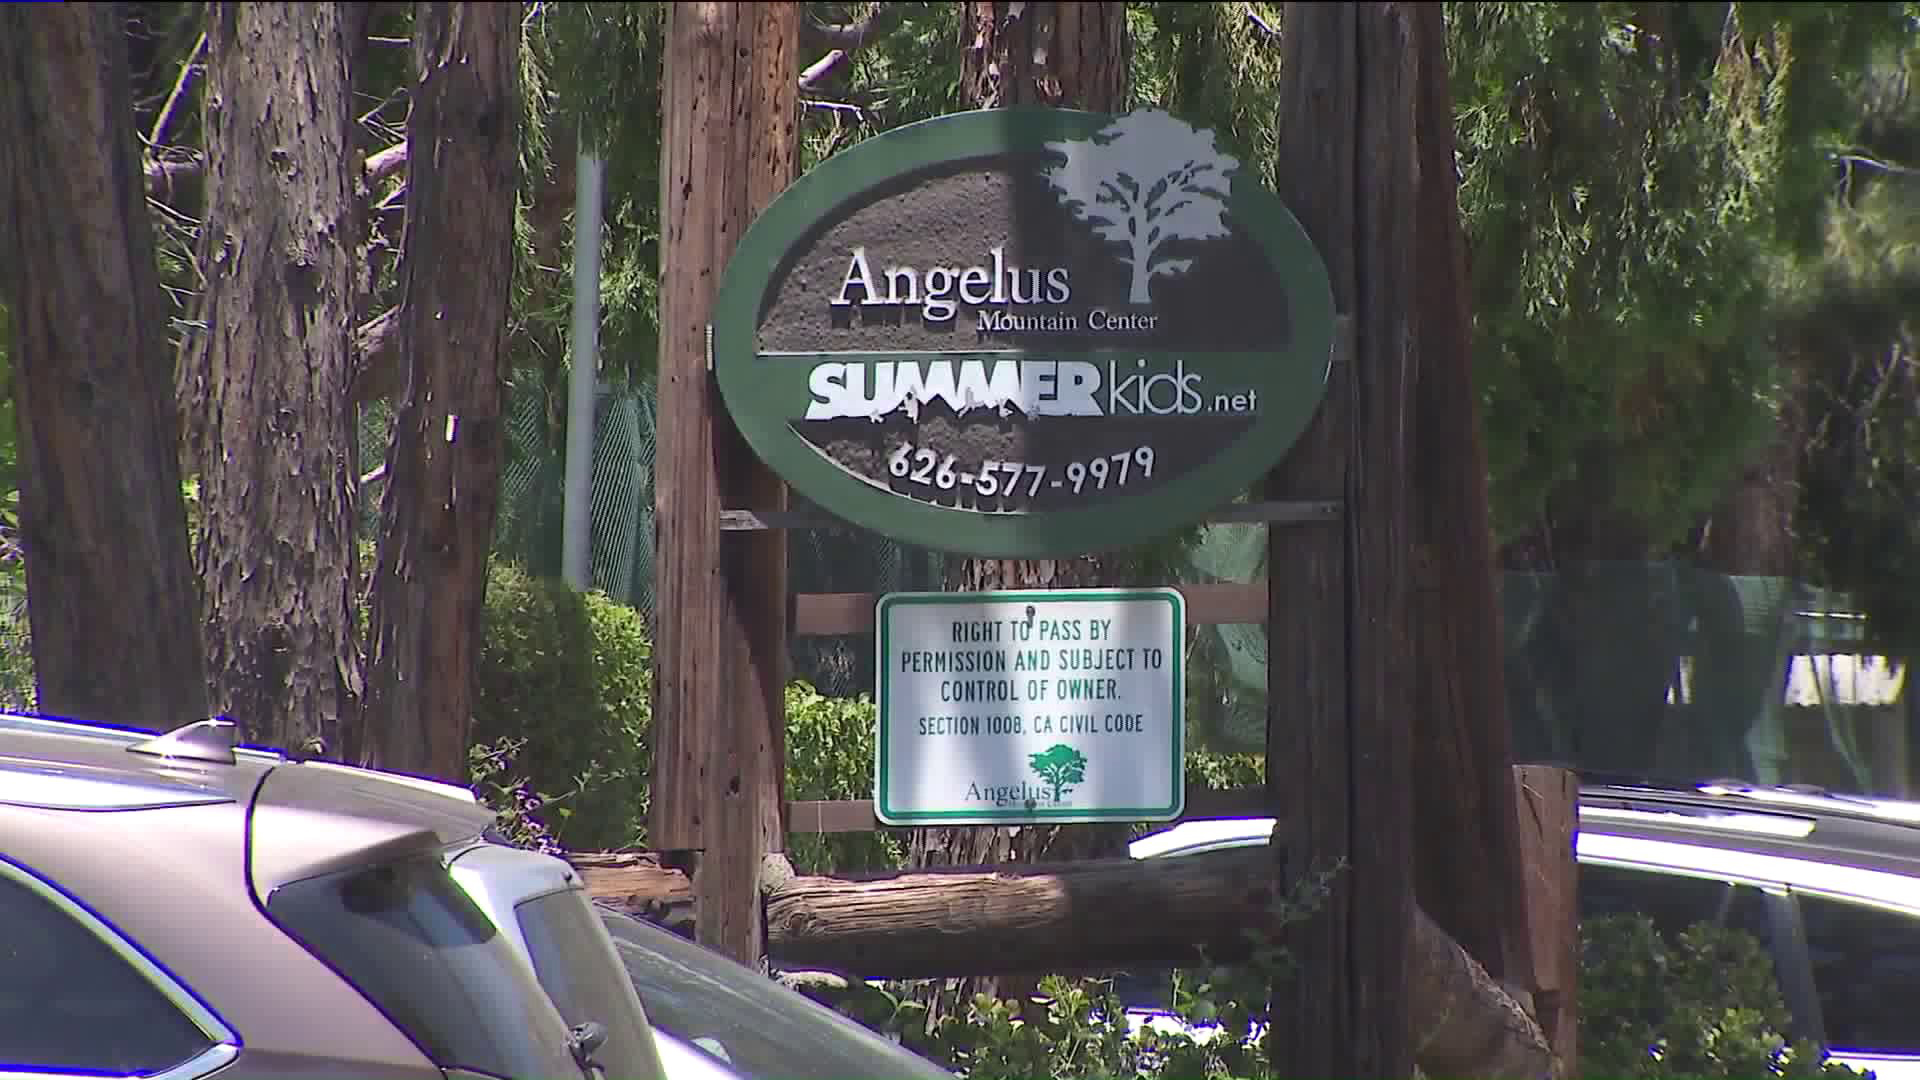 A sign for Summerkids camp in Altadena is seen on June 28, 2019. (Credit: KTLA)